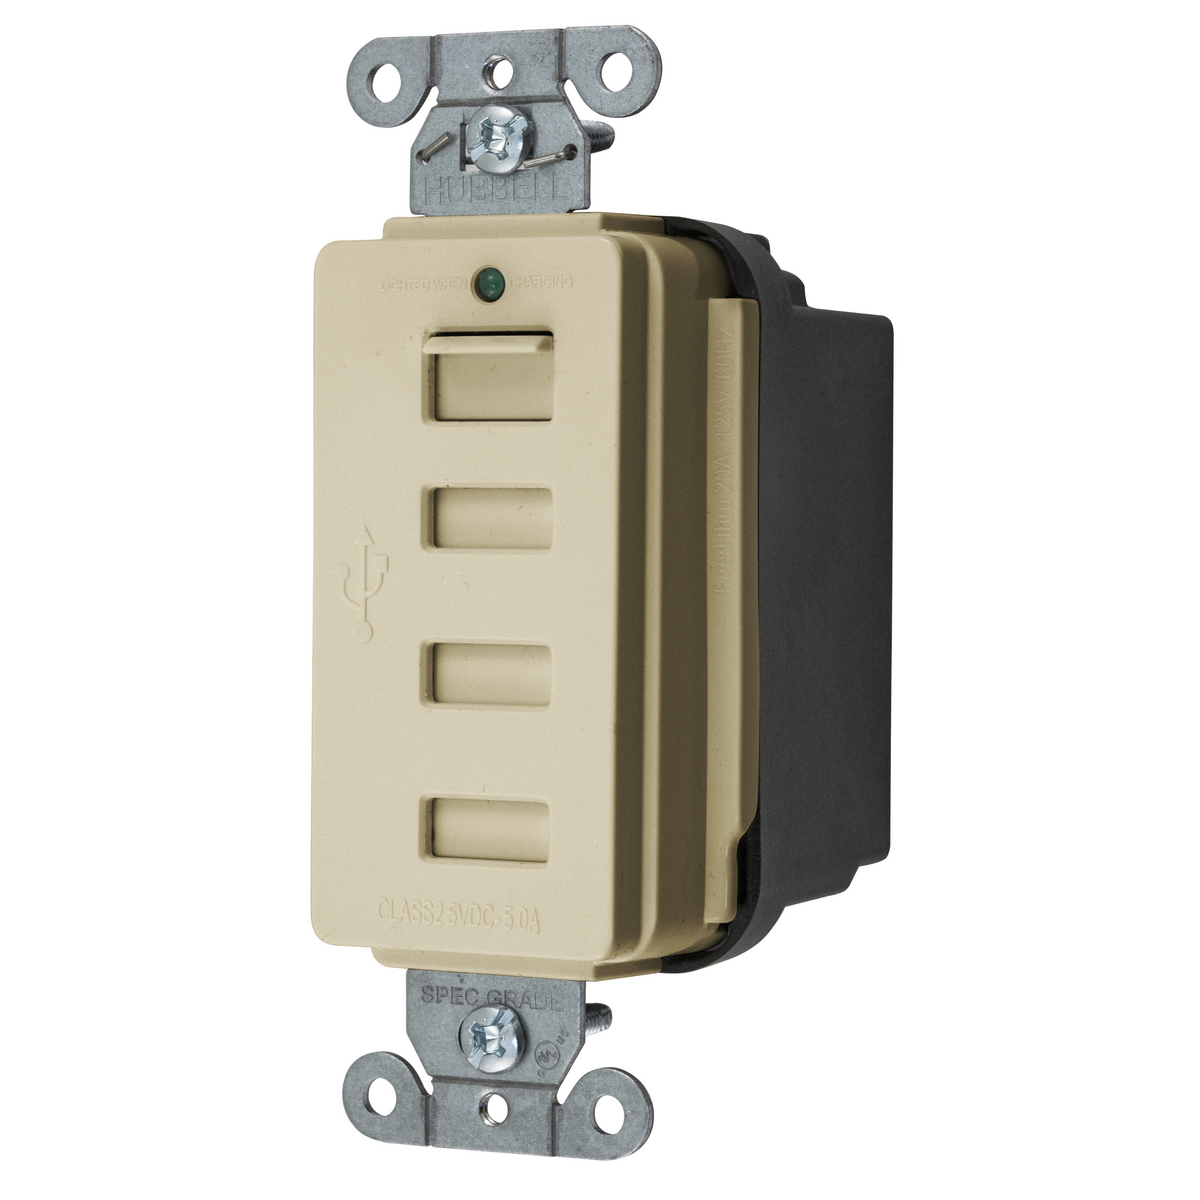 Hubbell USB4I Class 2.0 4-Port 5 Amp 5 VDC Ivory USB Charger